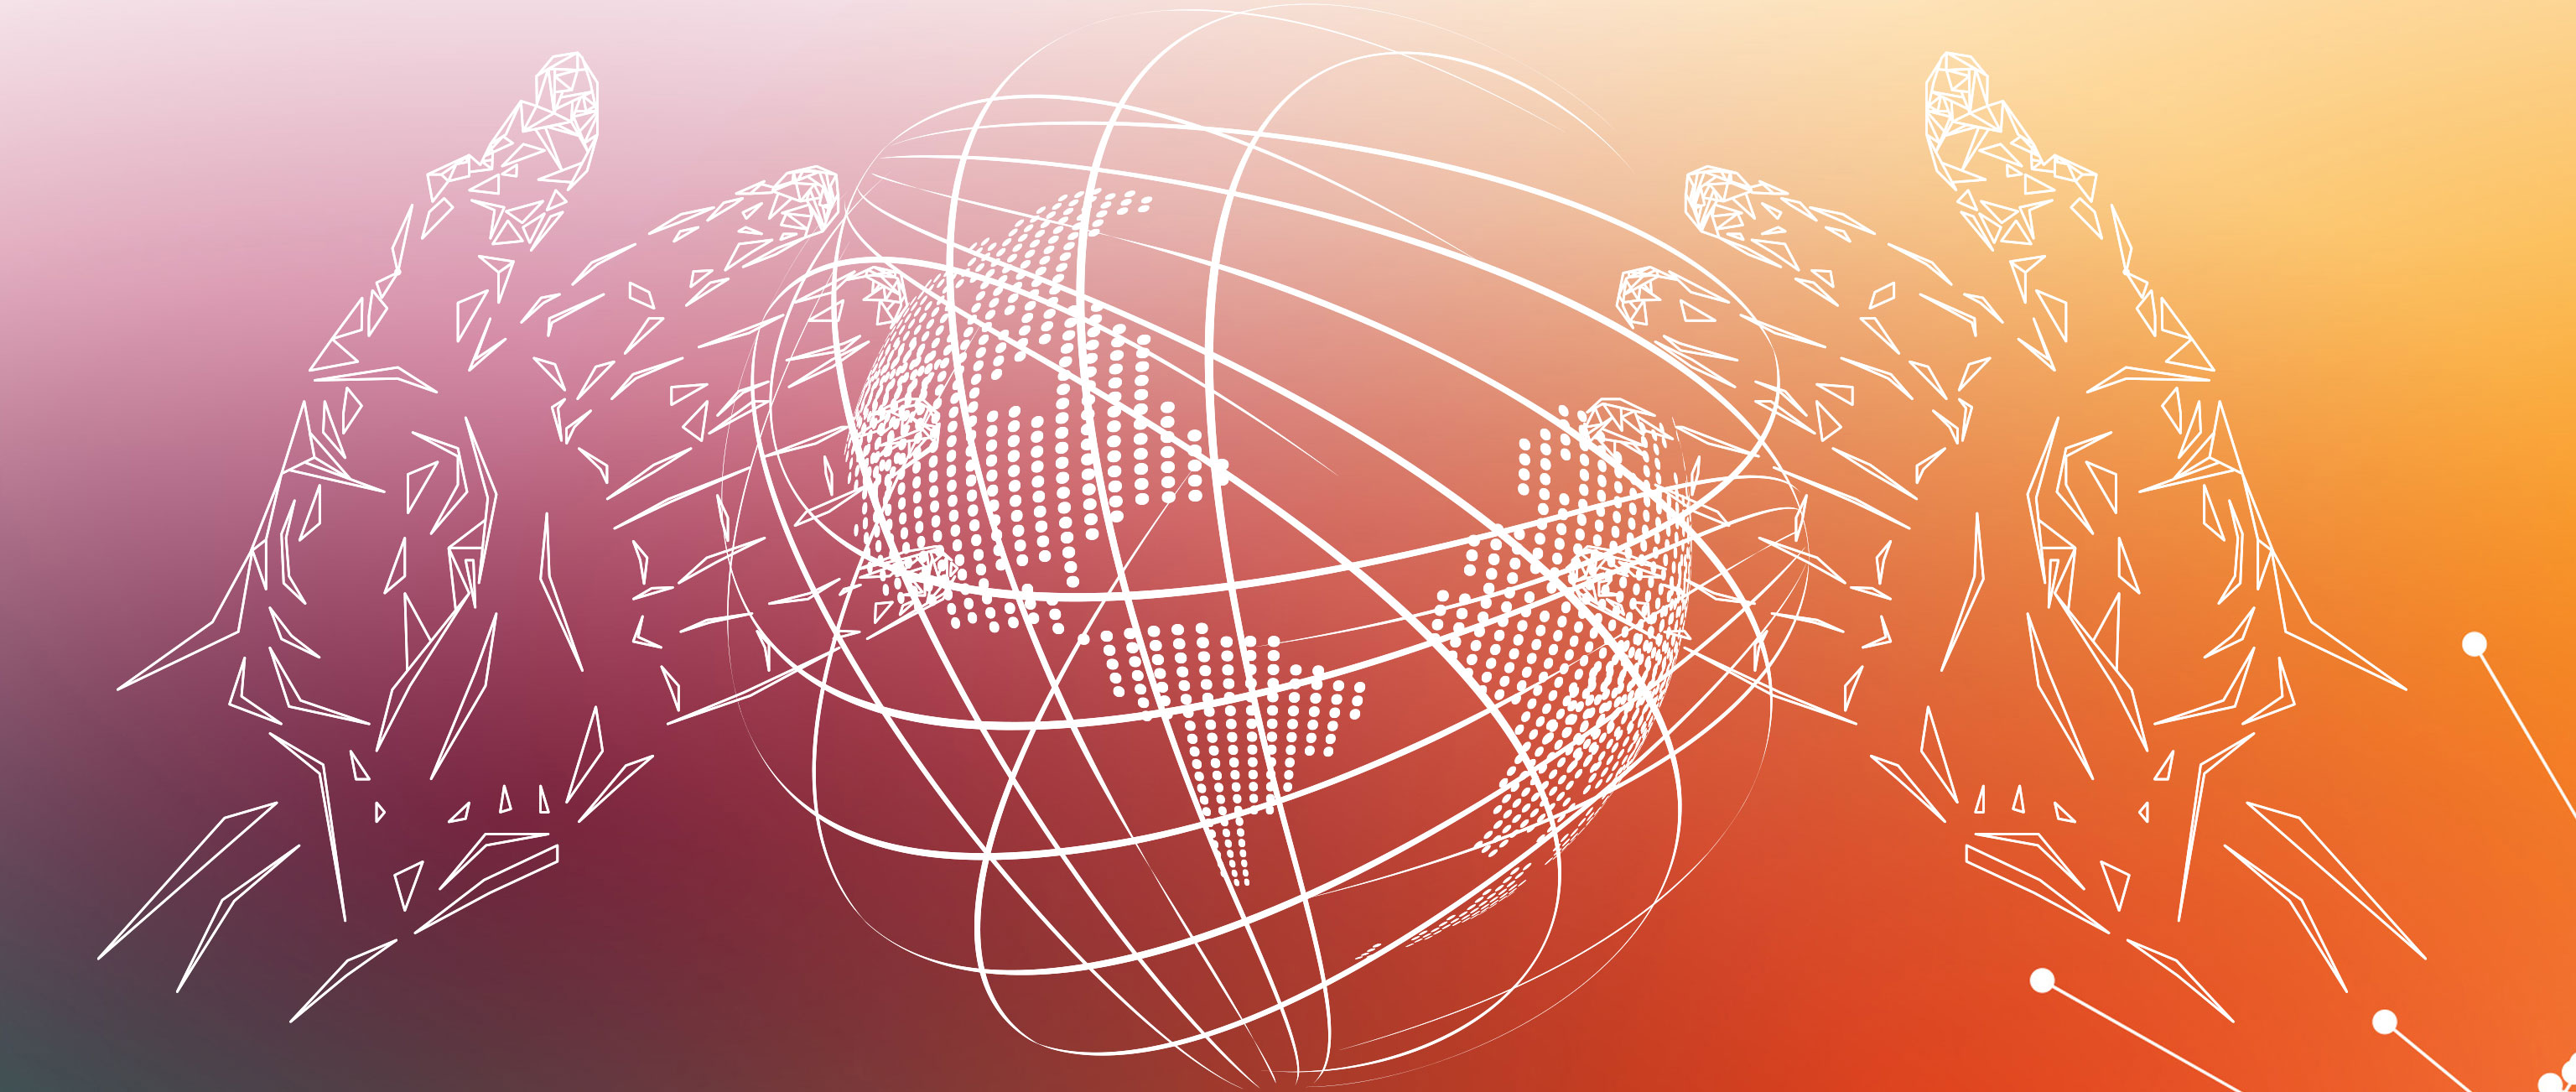 A line illustration of a pair of hands holding the globe with nations connected into a global network